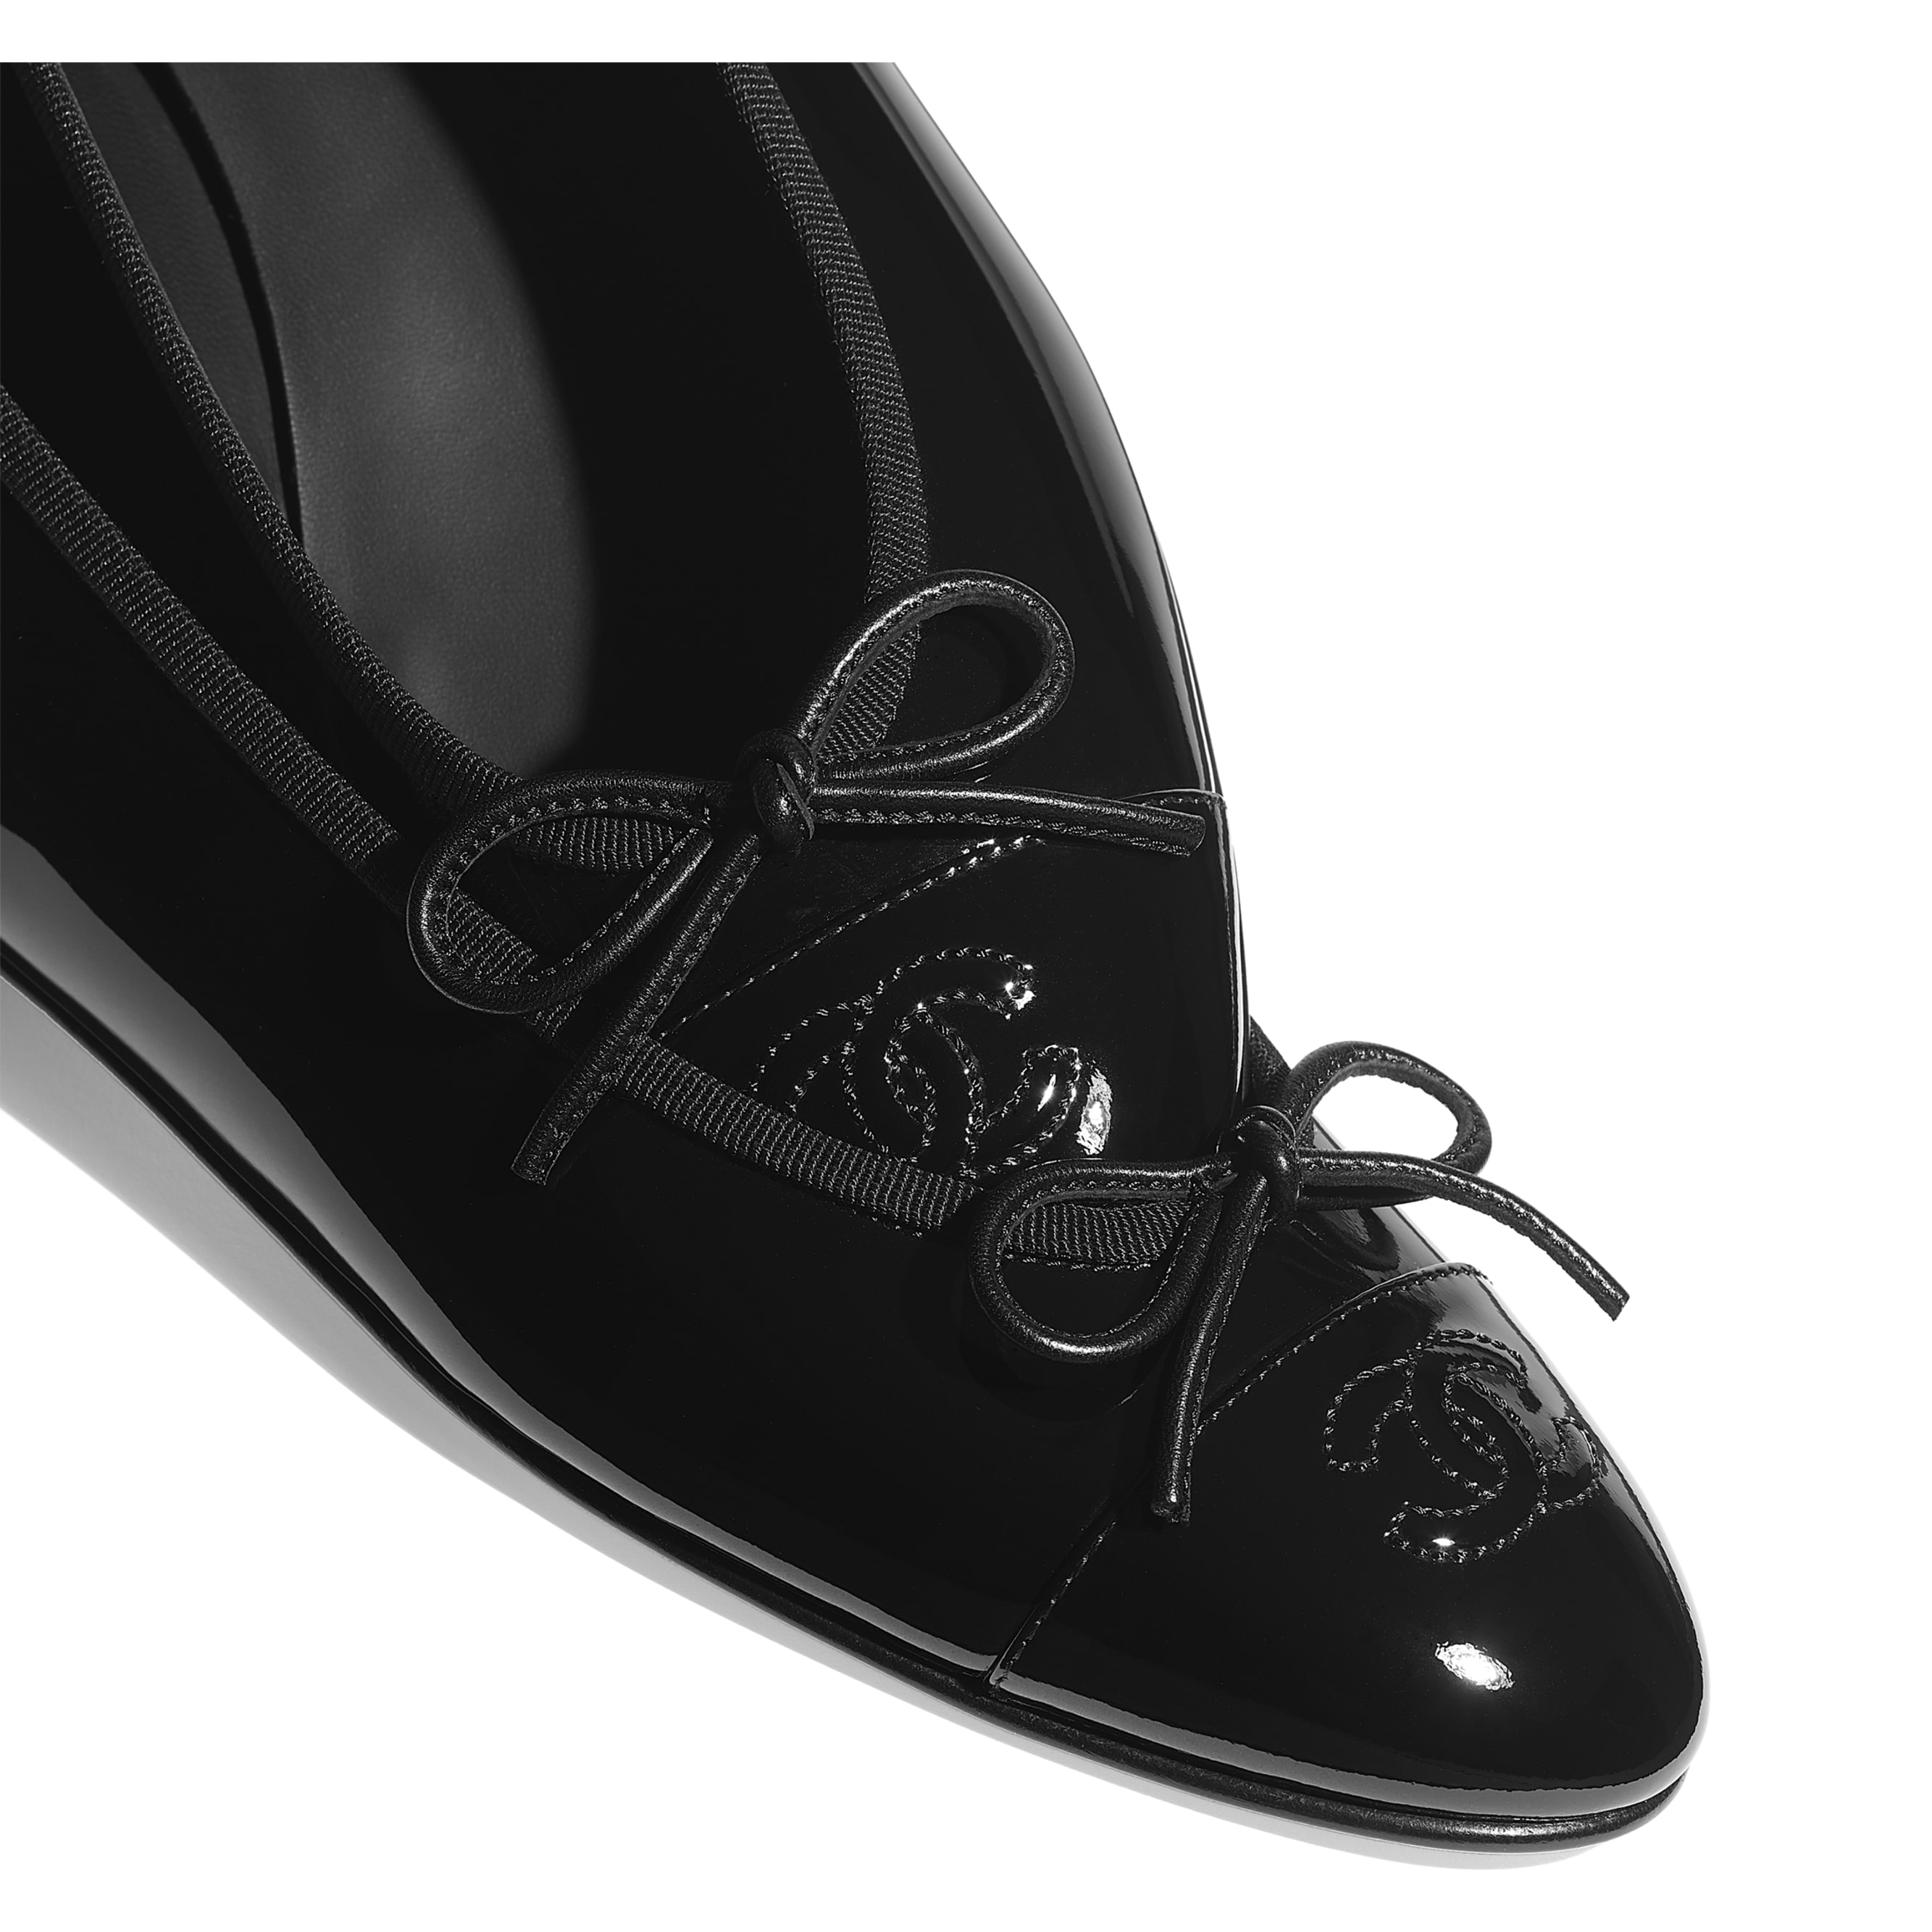 Ballerinas - Black - Patent Calfskin - CHANEL - Extra view - see standard sized version